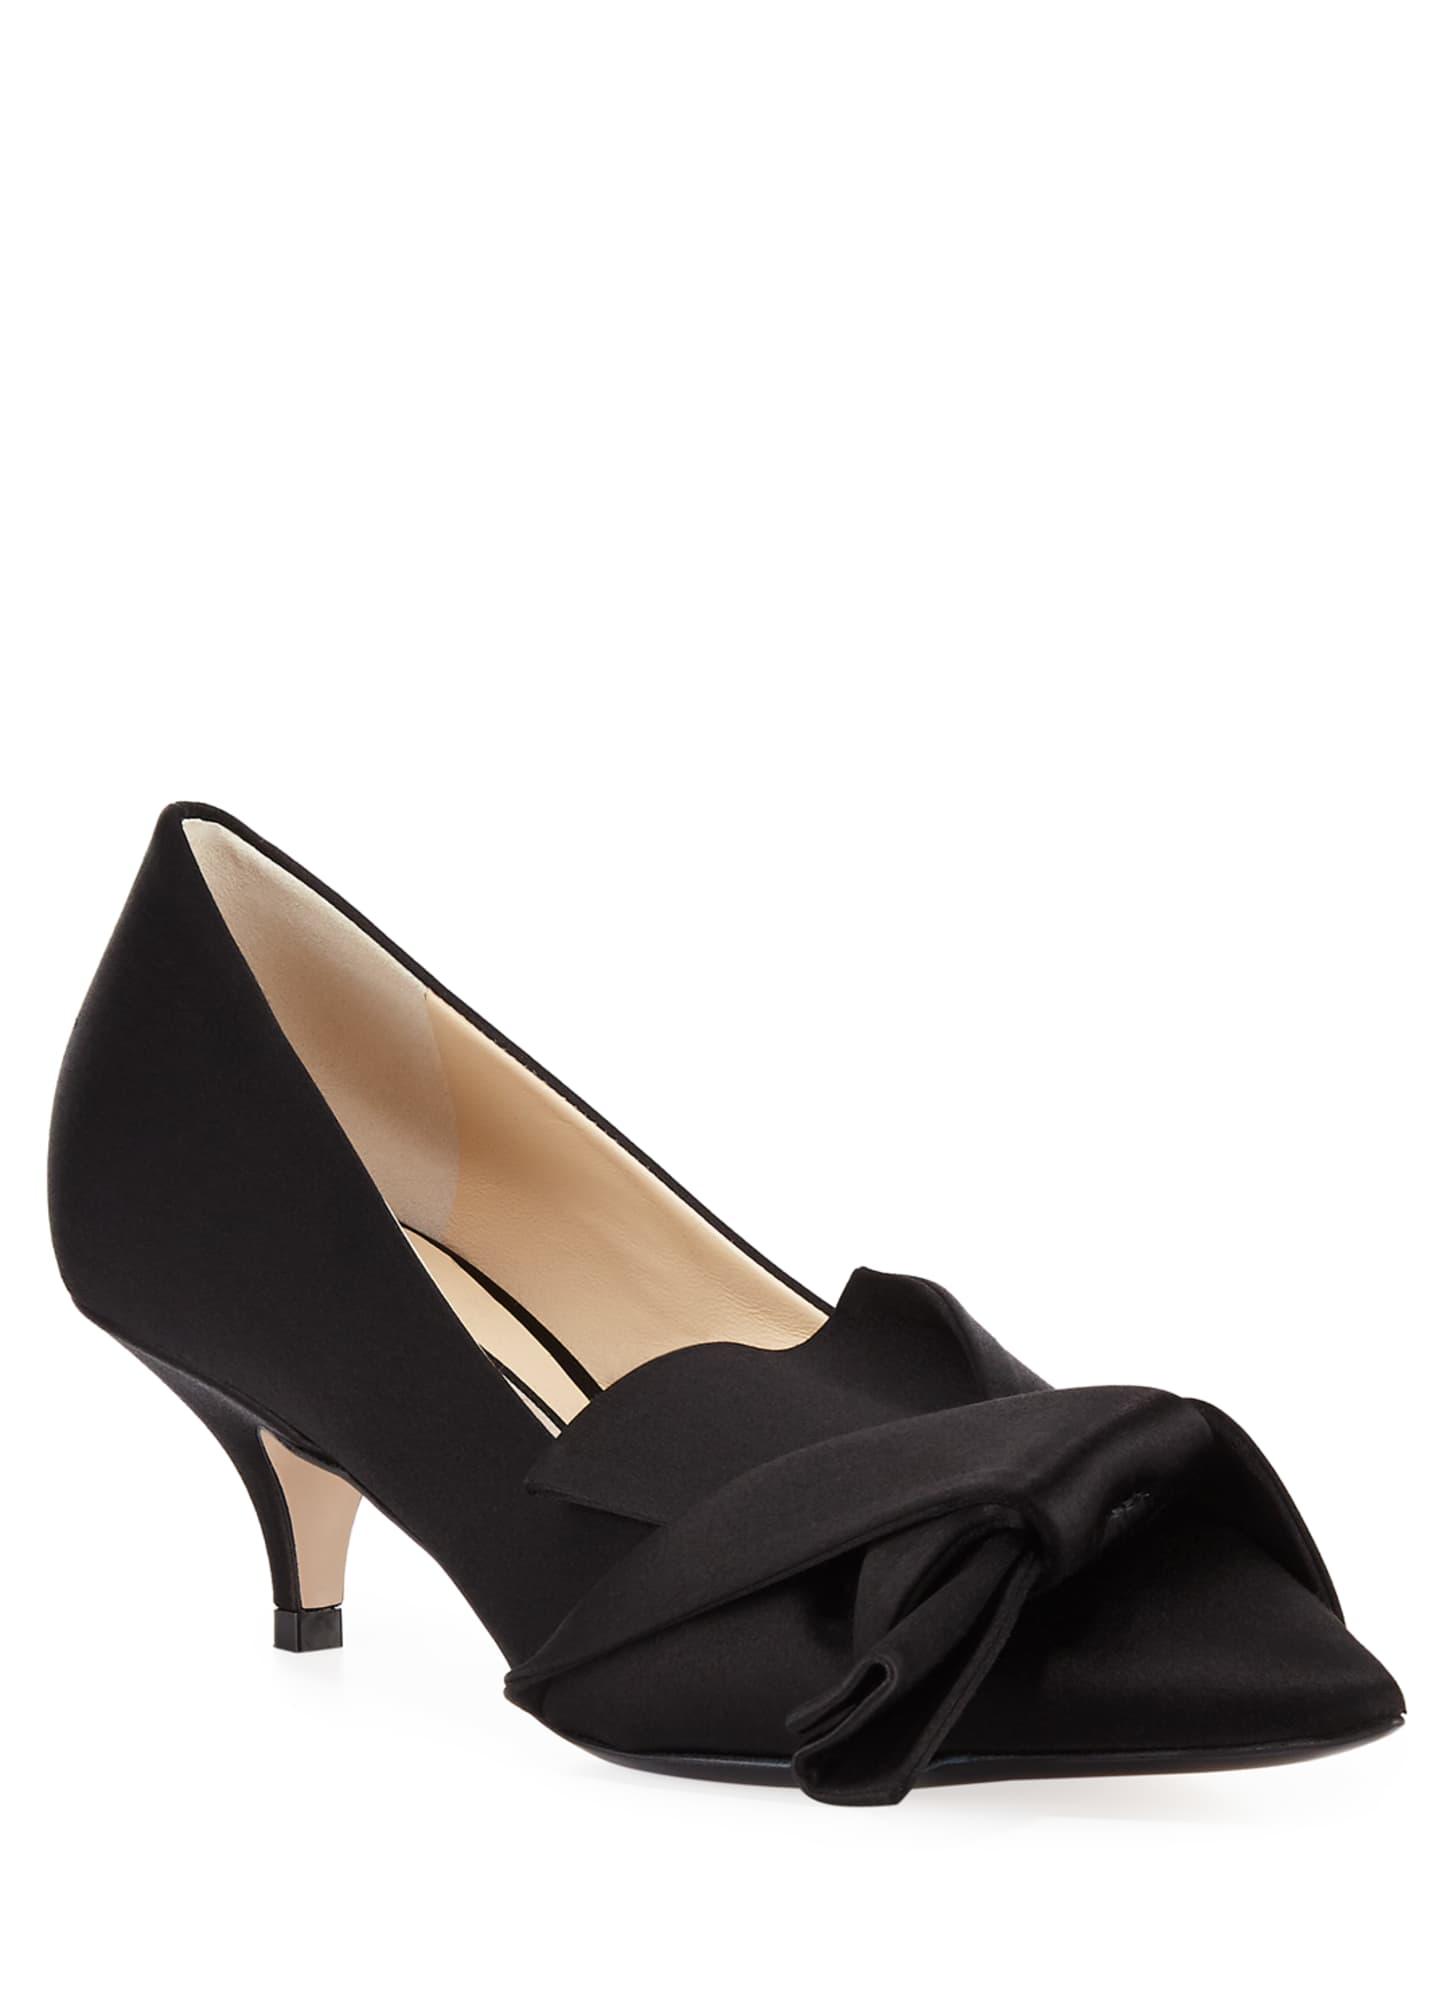 No. 21 Satin Pumps with Knotted Bow